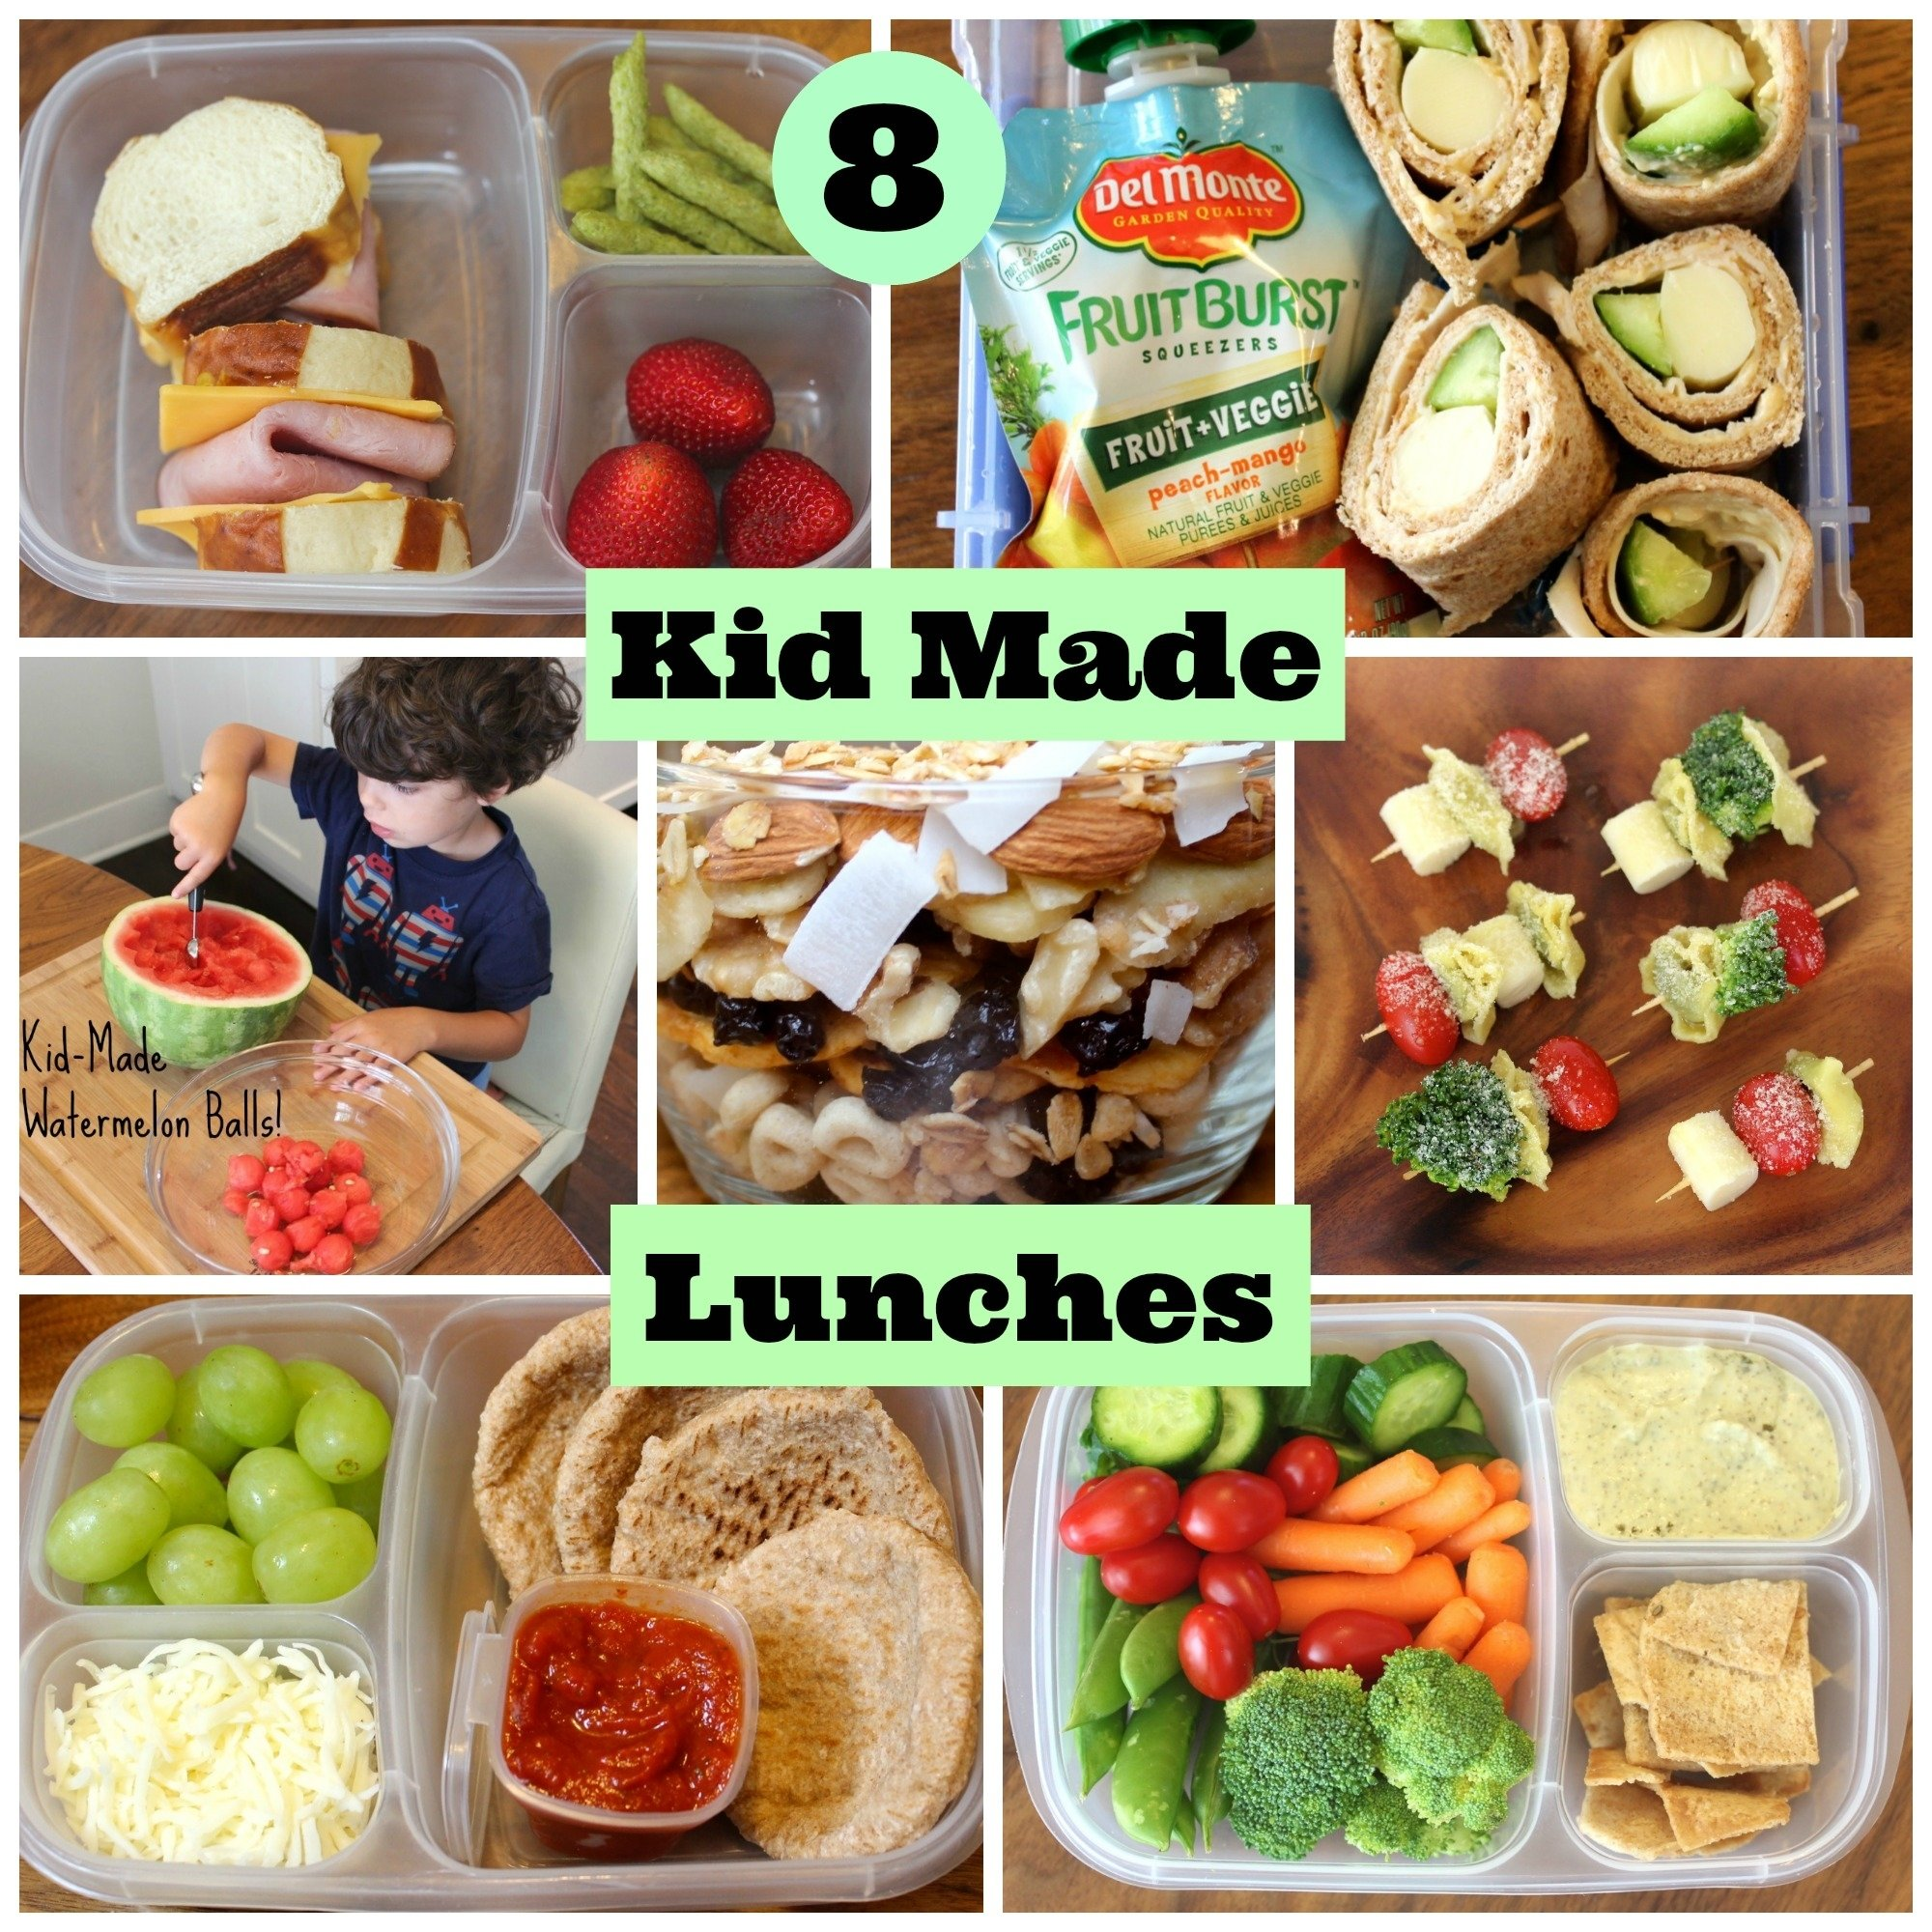 10 Great School Lunch Ideas For High Schoolers 4 healthy school lunches your kids can make themselves babble 14 2021